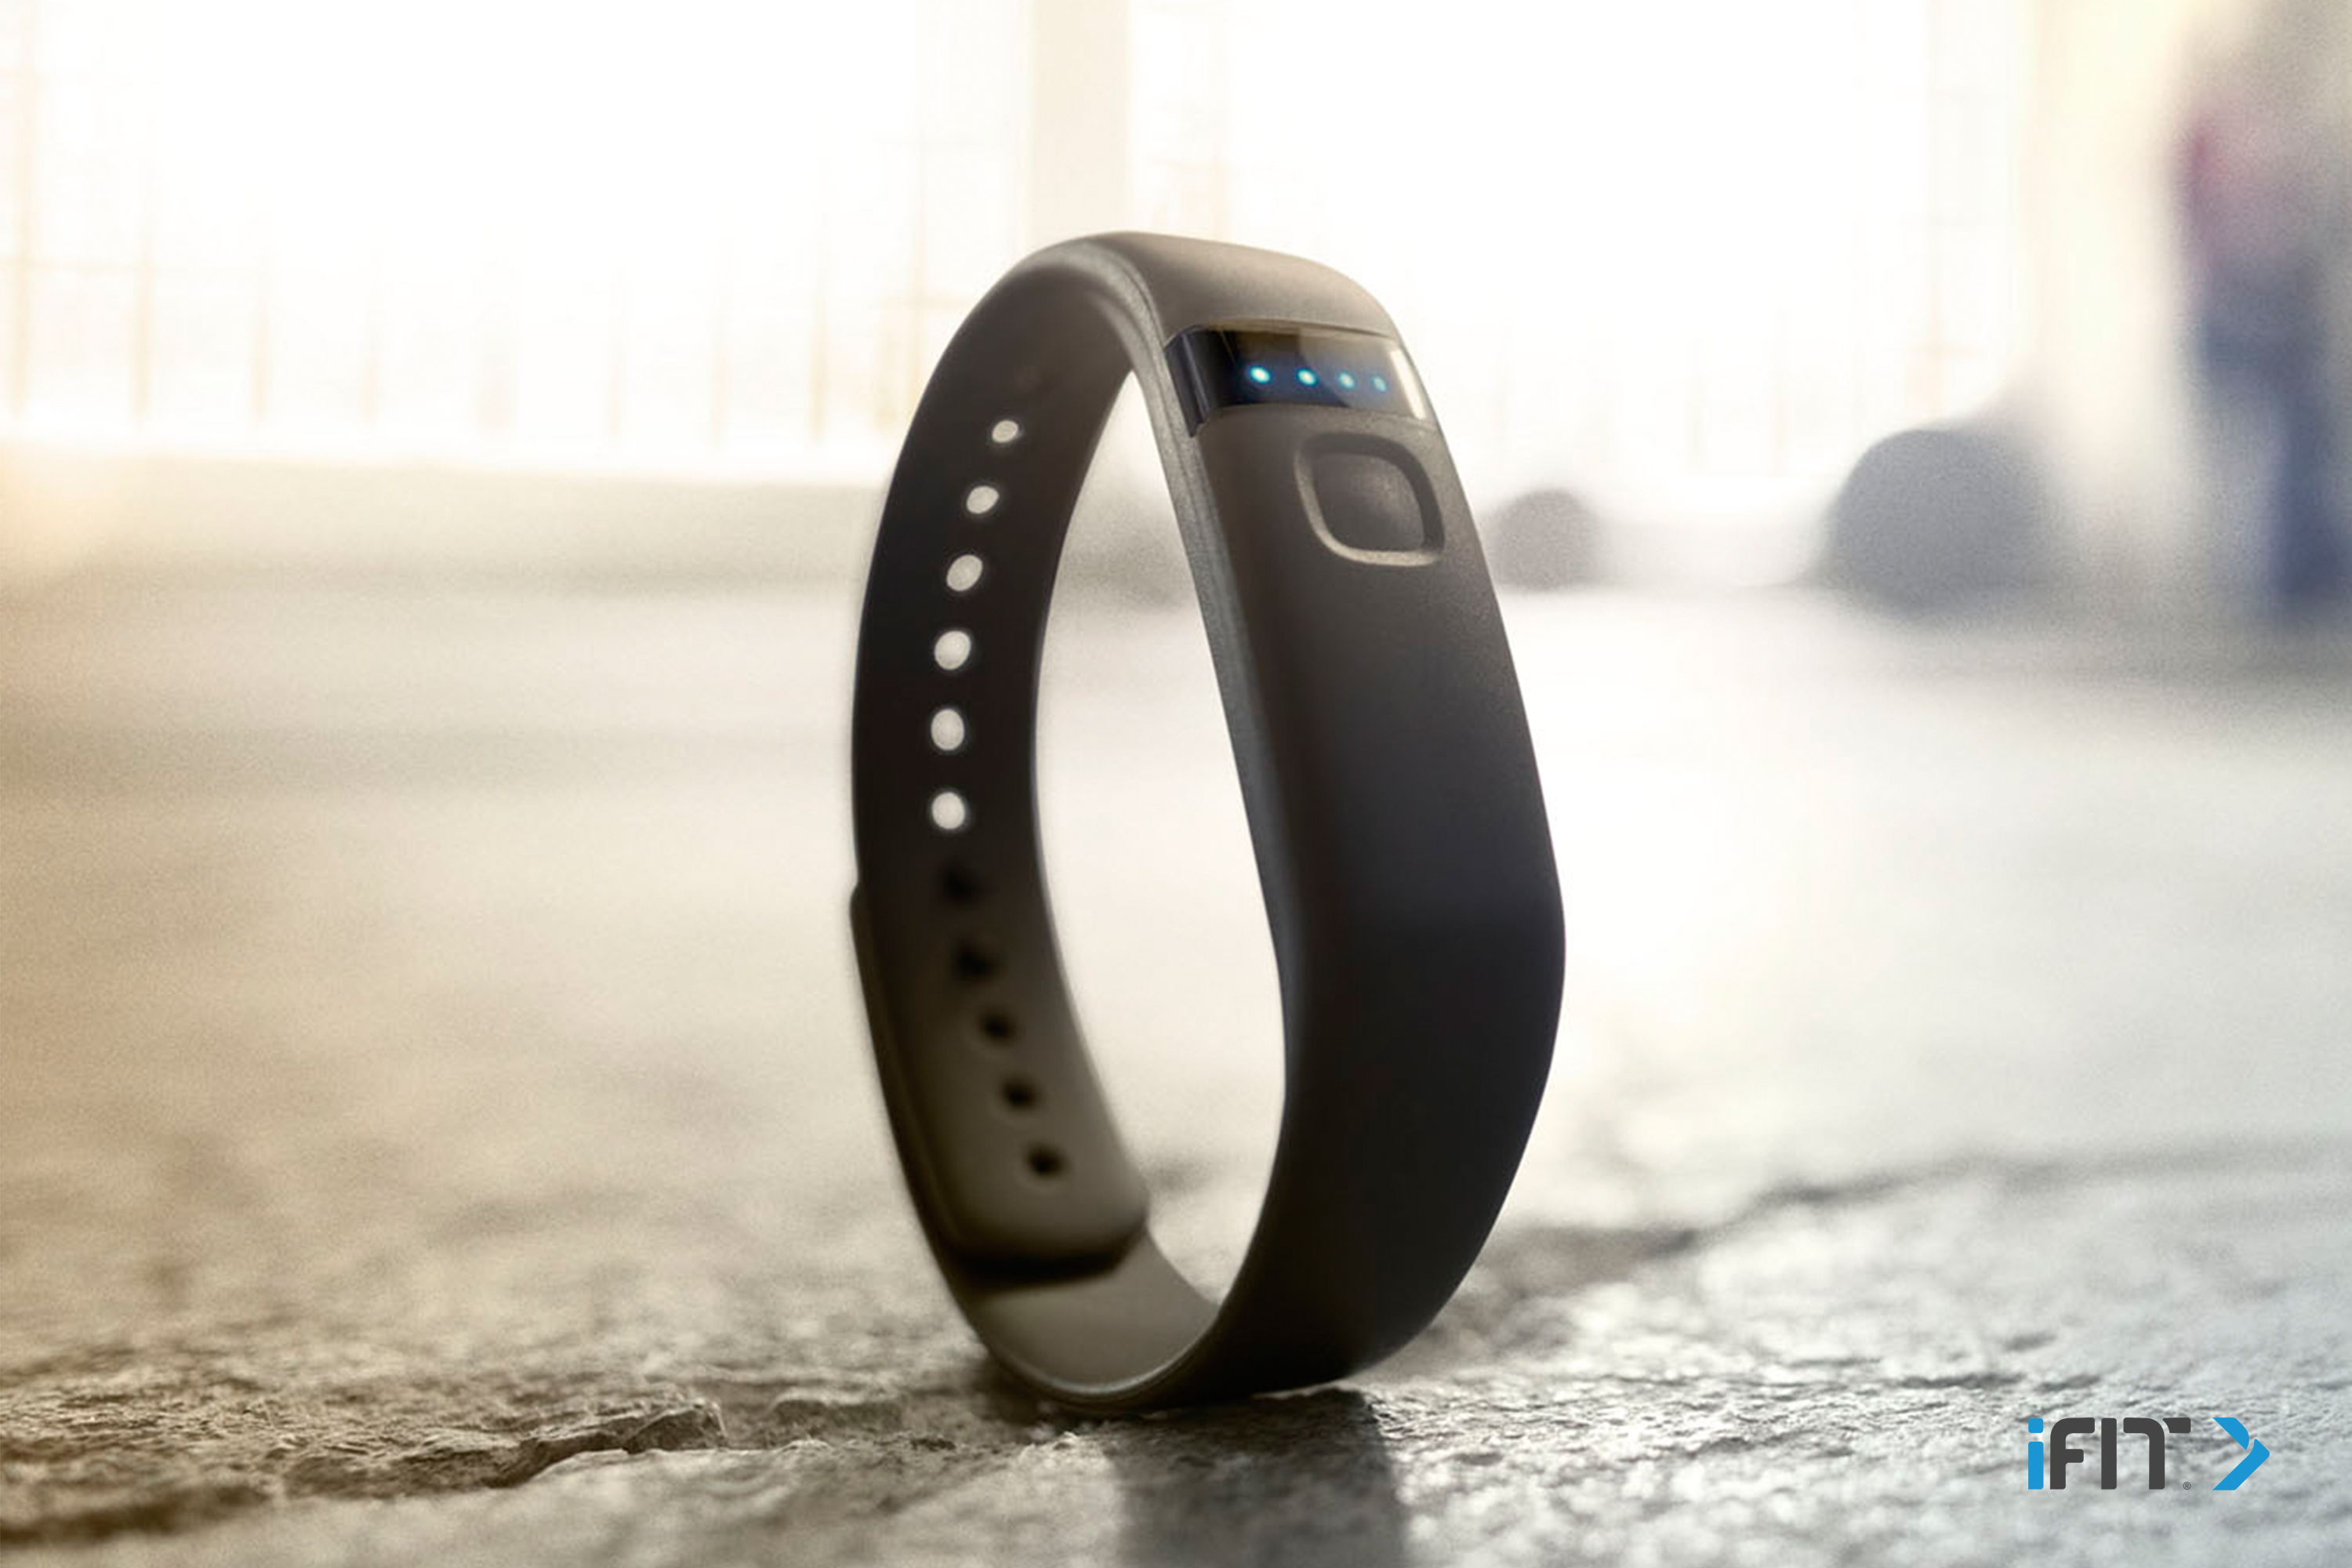 iFit link band